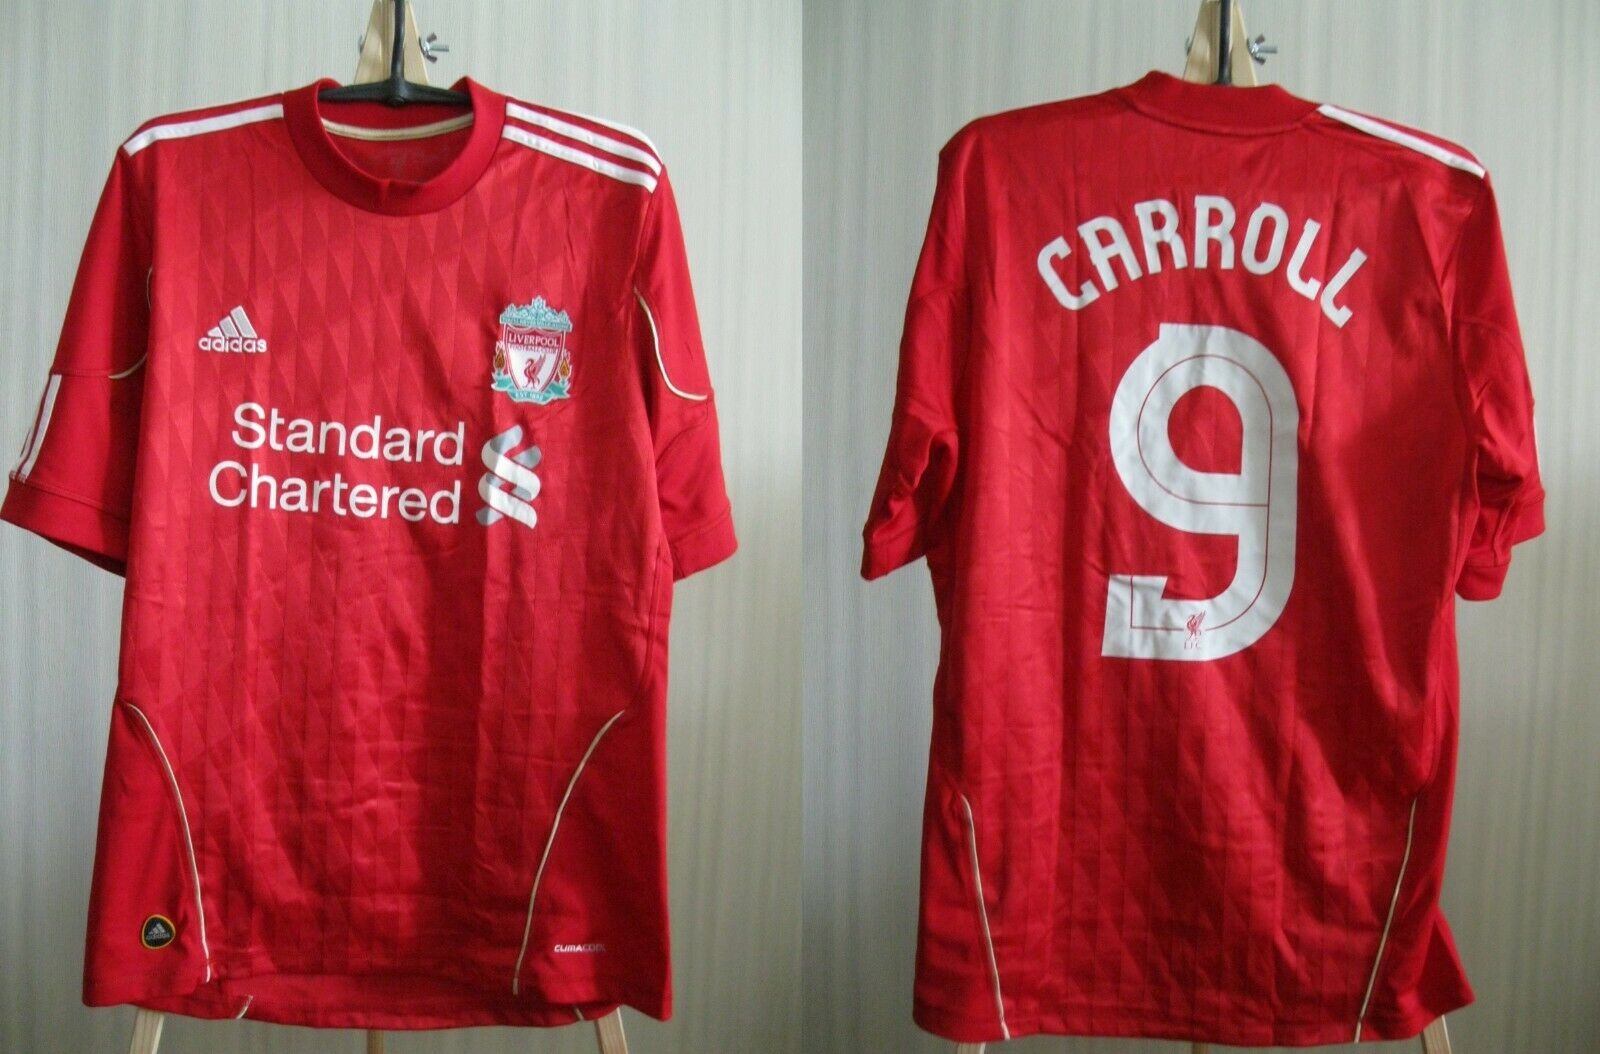 Liverpool #9 Carroll 2010/2011/2012 home Size S Adidas p96763 jersey